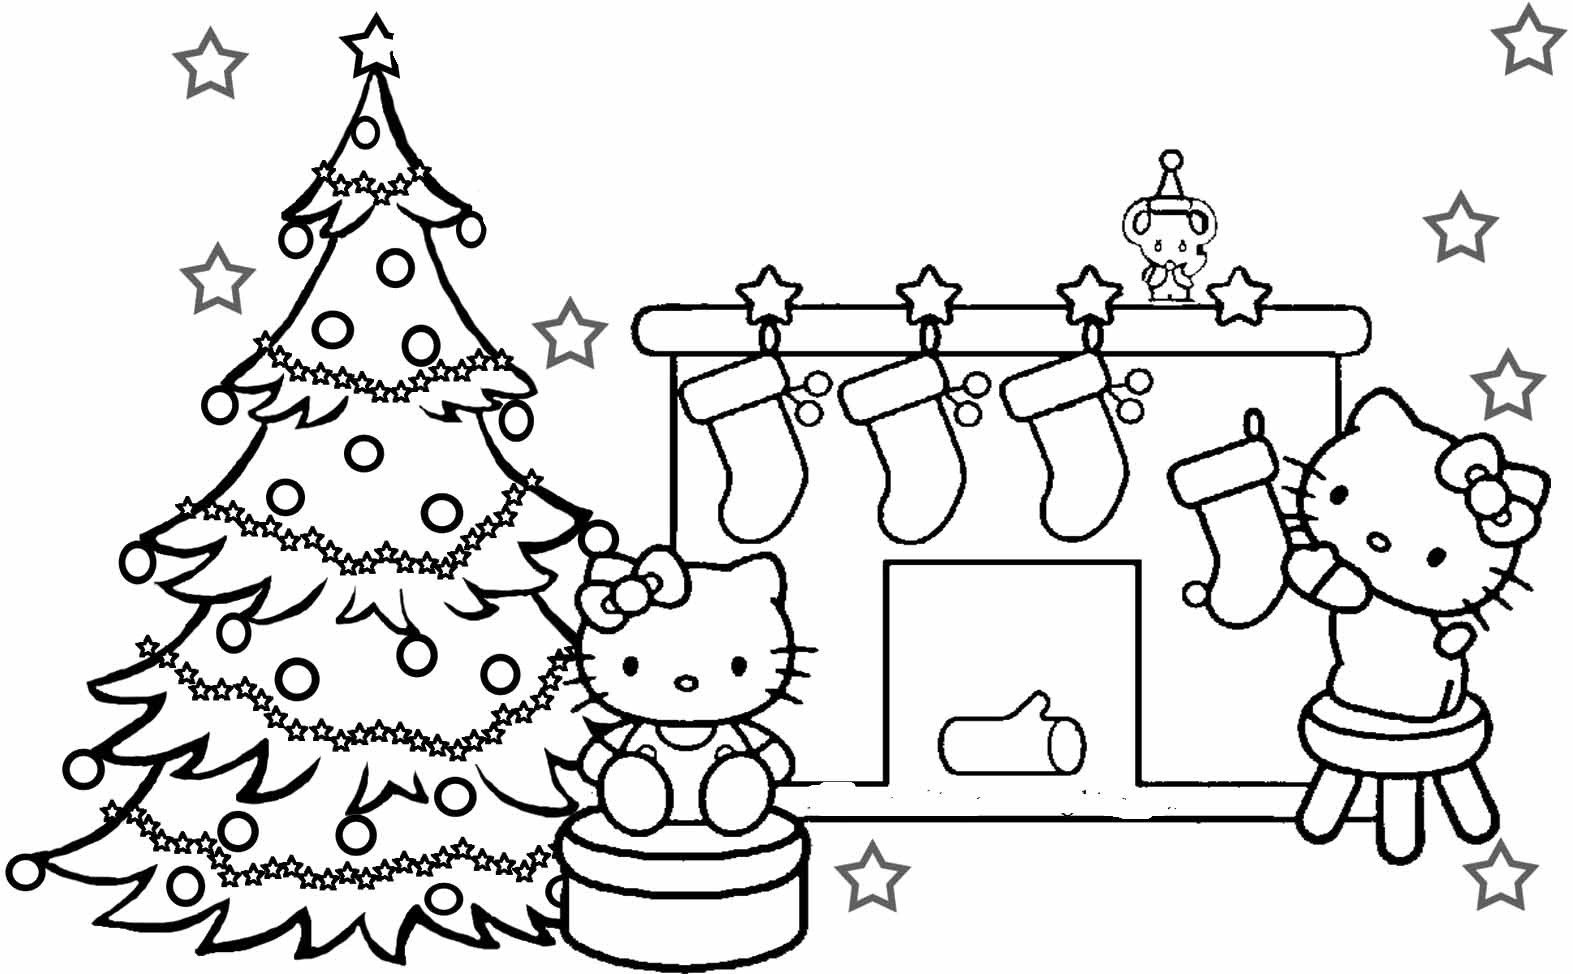 Christmas Coloring Pages For Kids To Print Out  Christmas Coloring Pages For Kids Printable Coloring Home